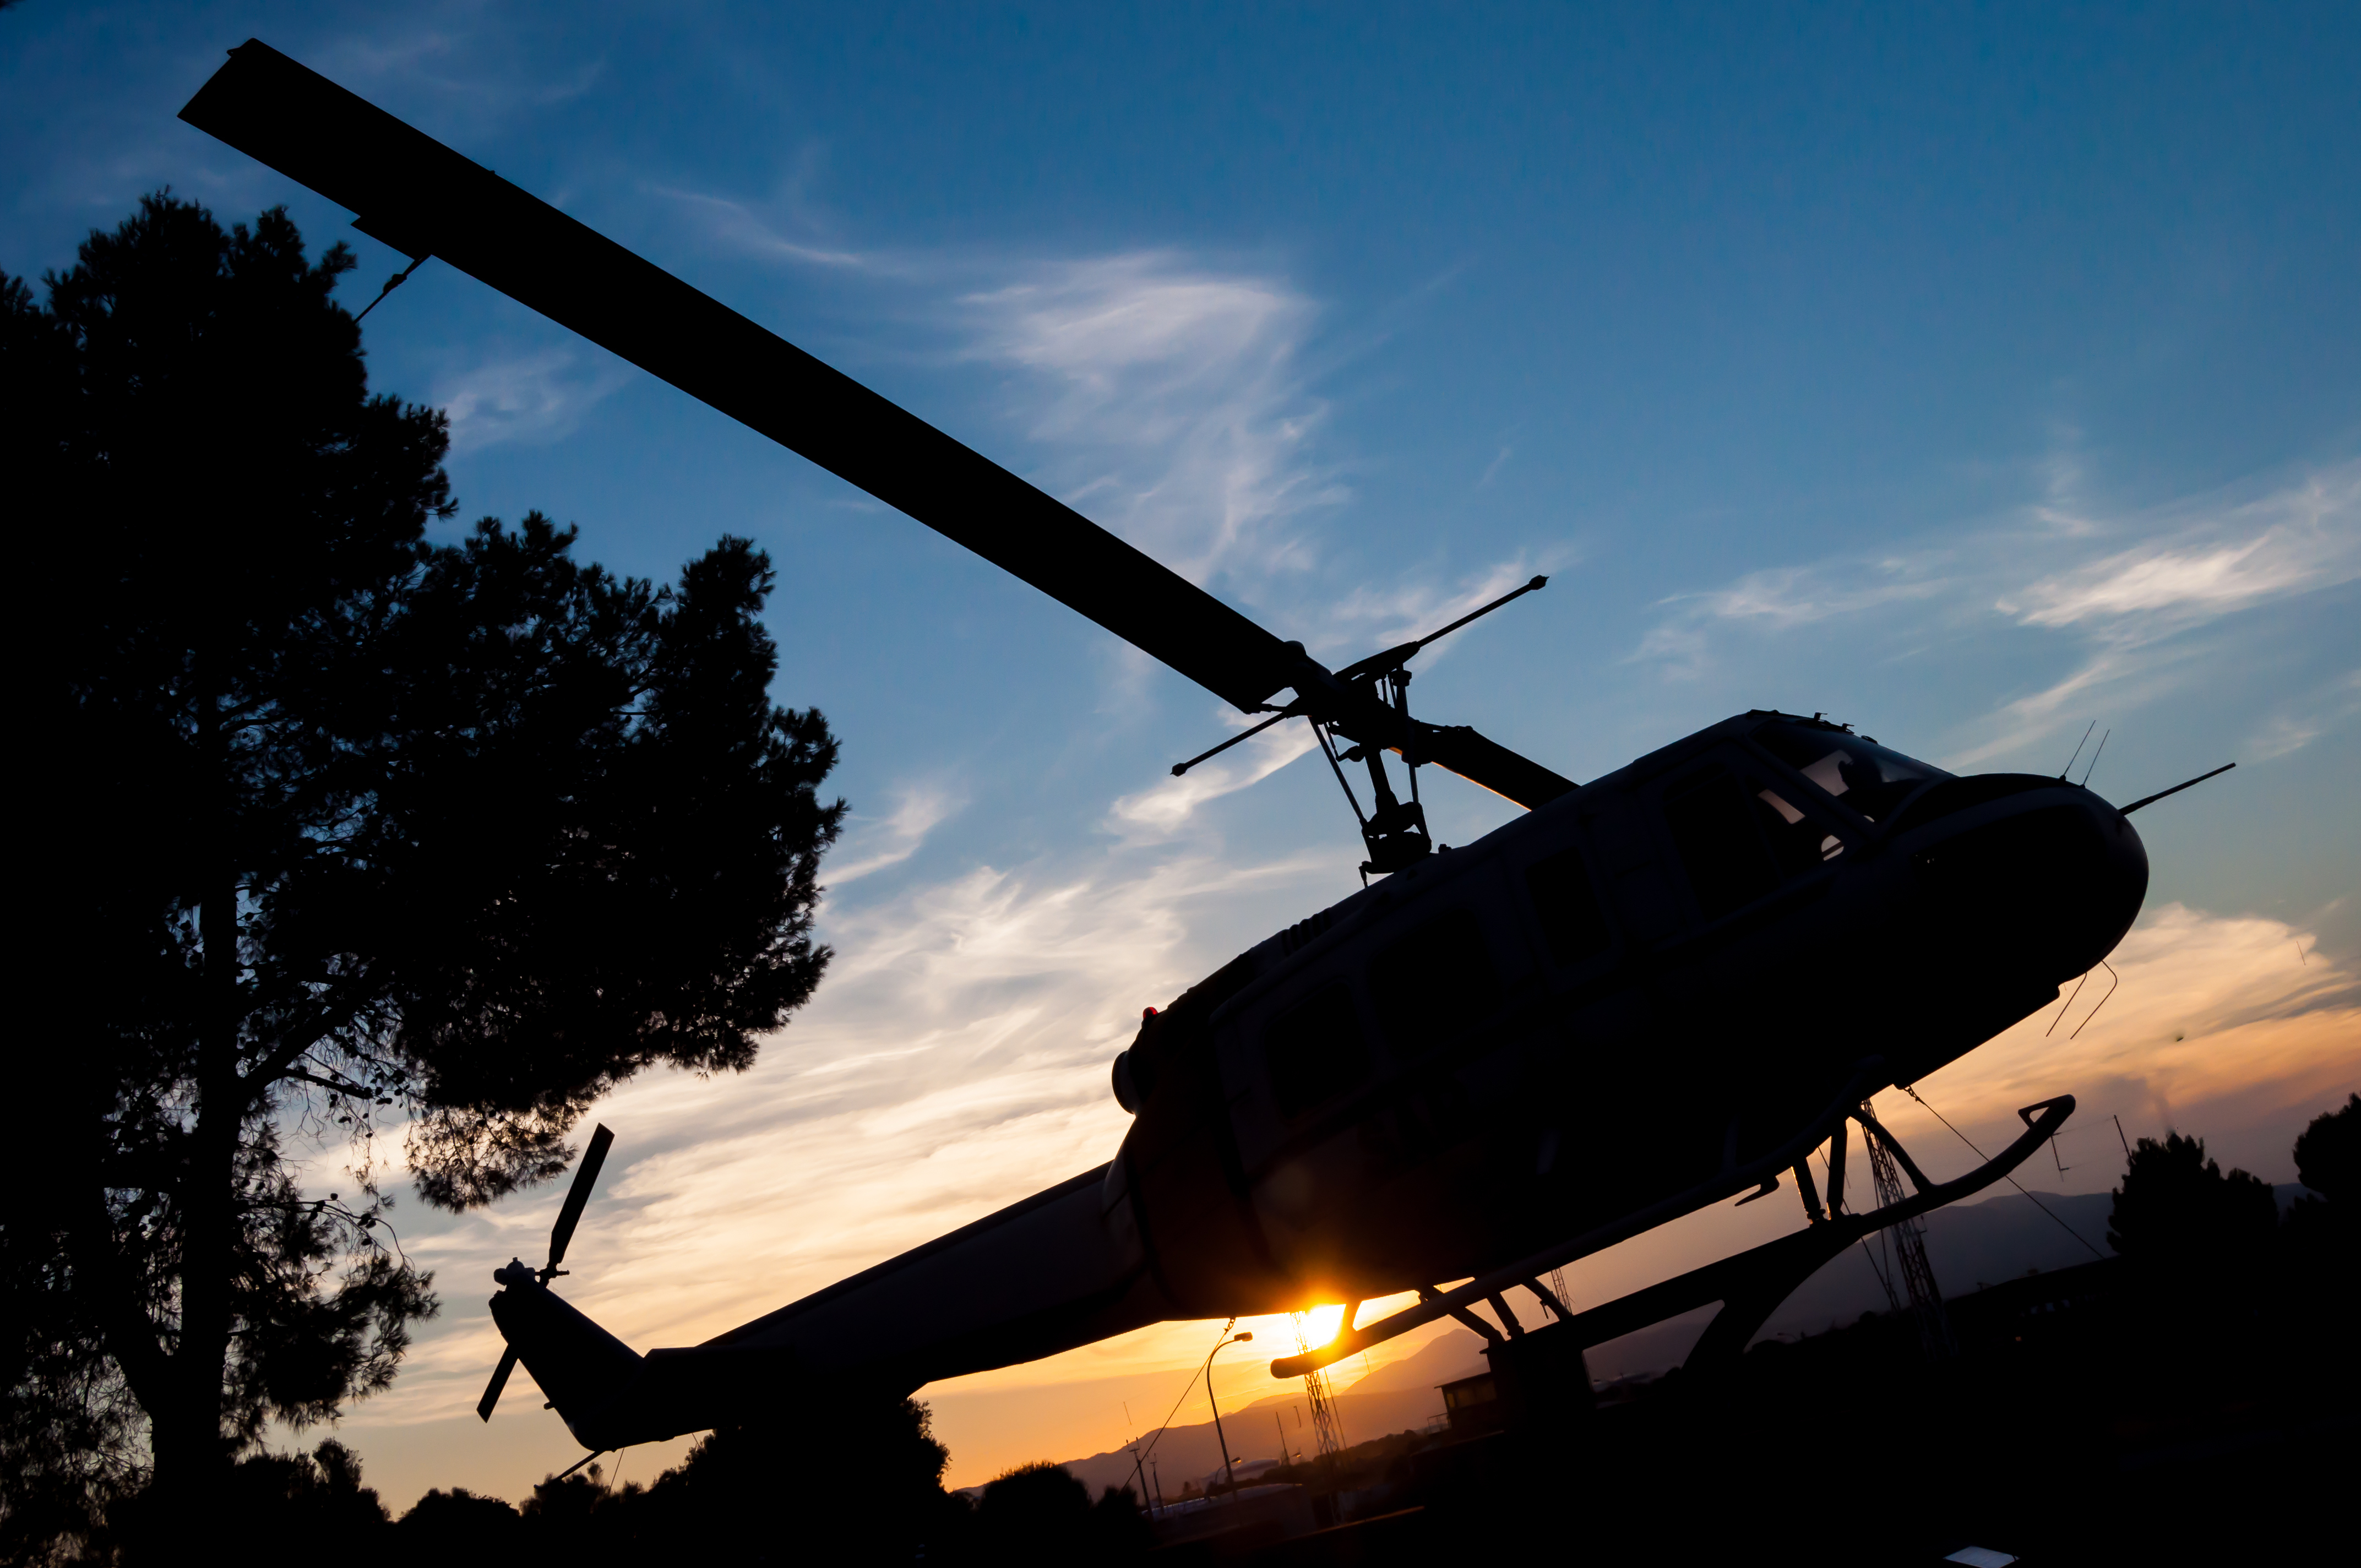 Silhouette of a helicopter on the backdrop of a sunset blue sky, representing aviation career opportunities with M&E